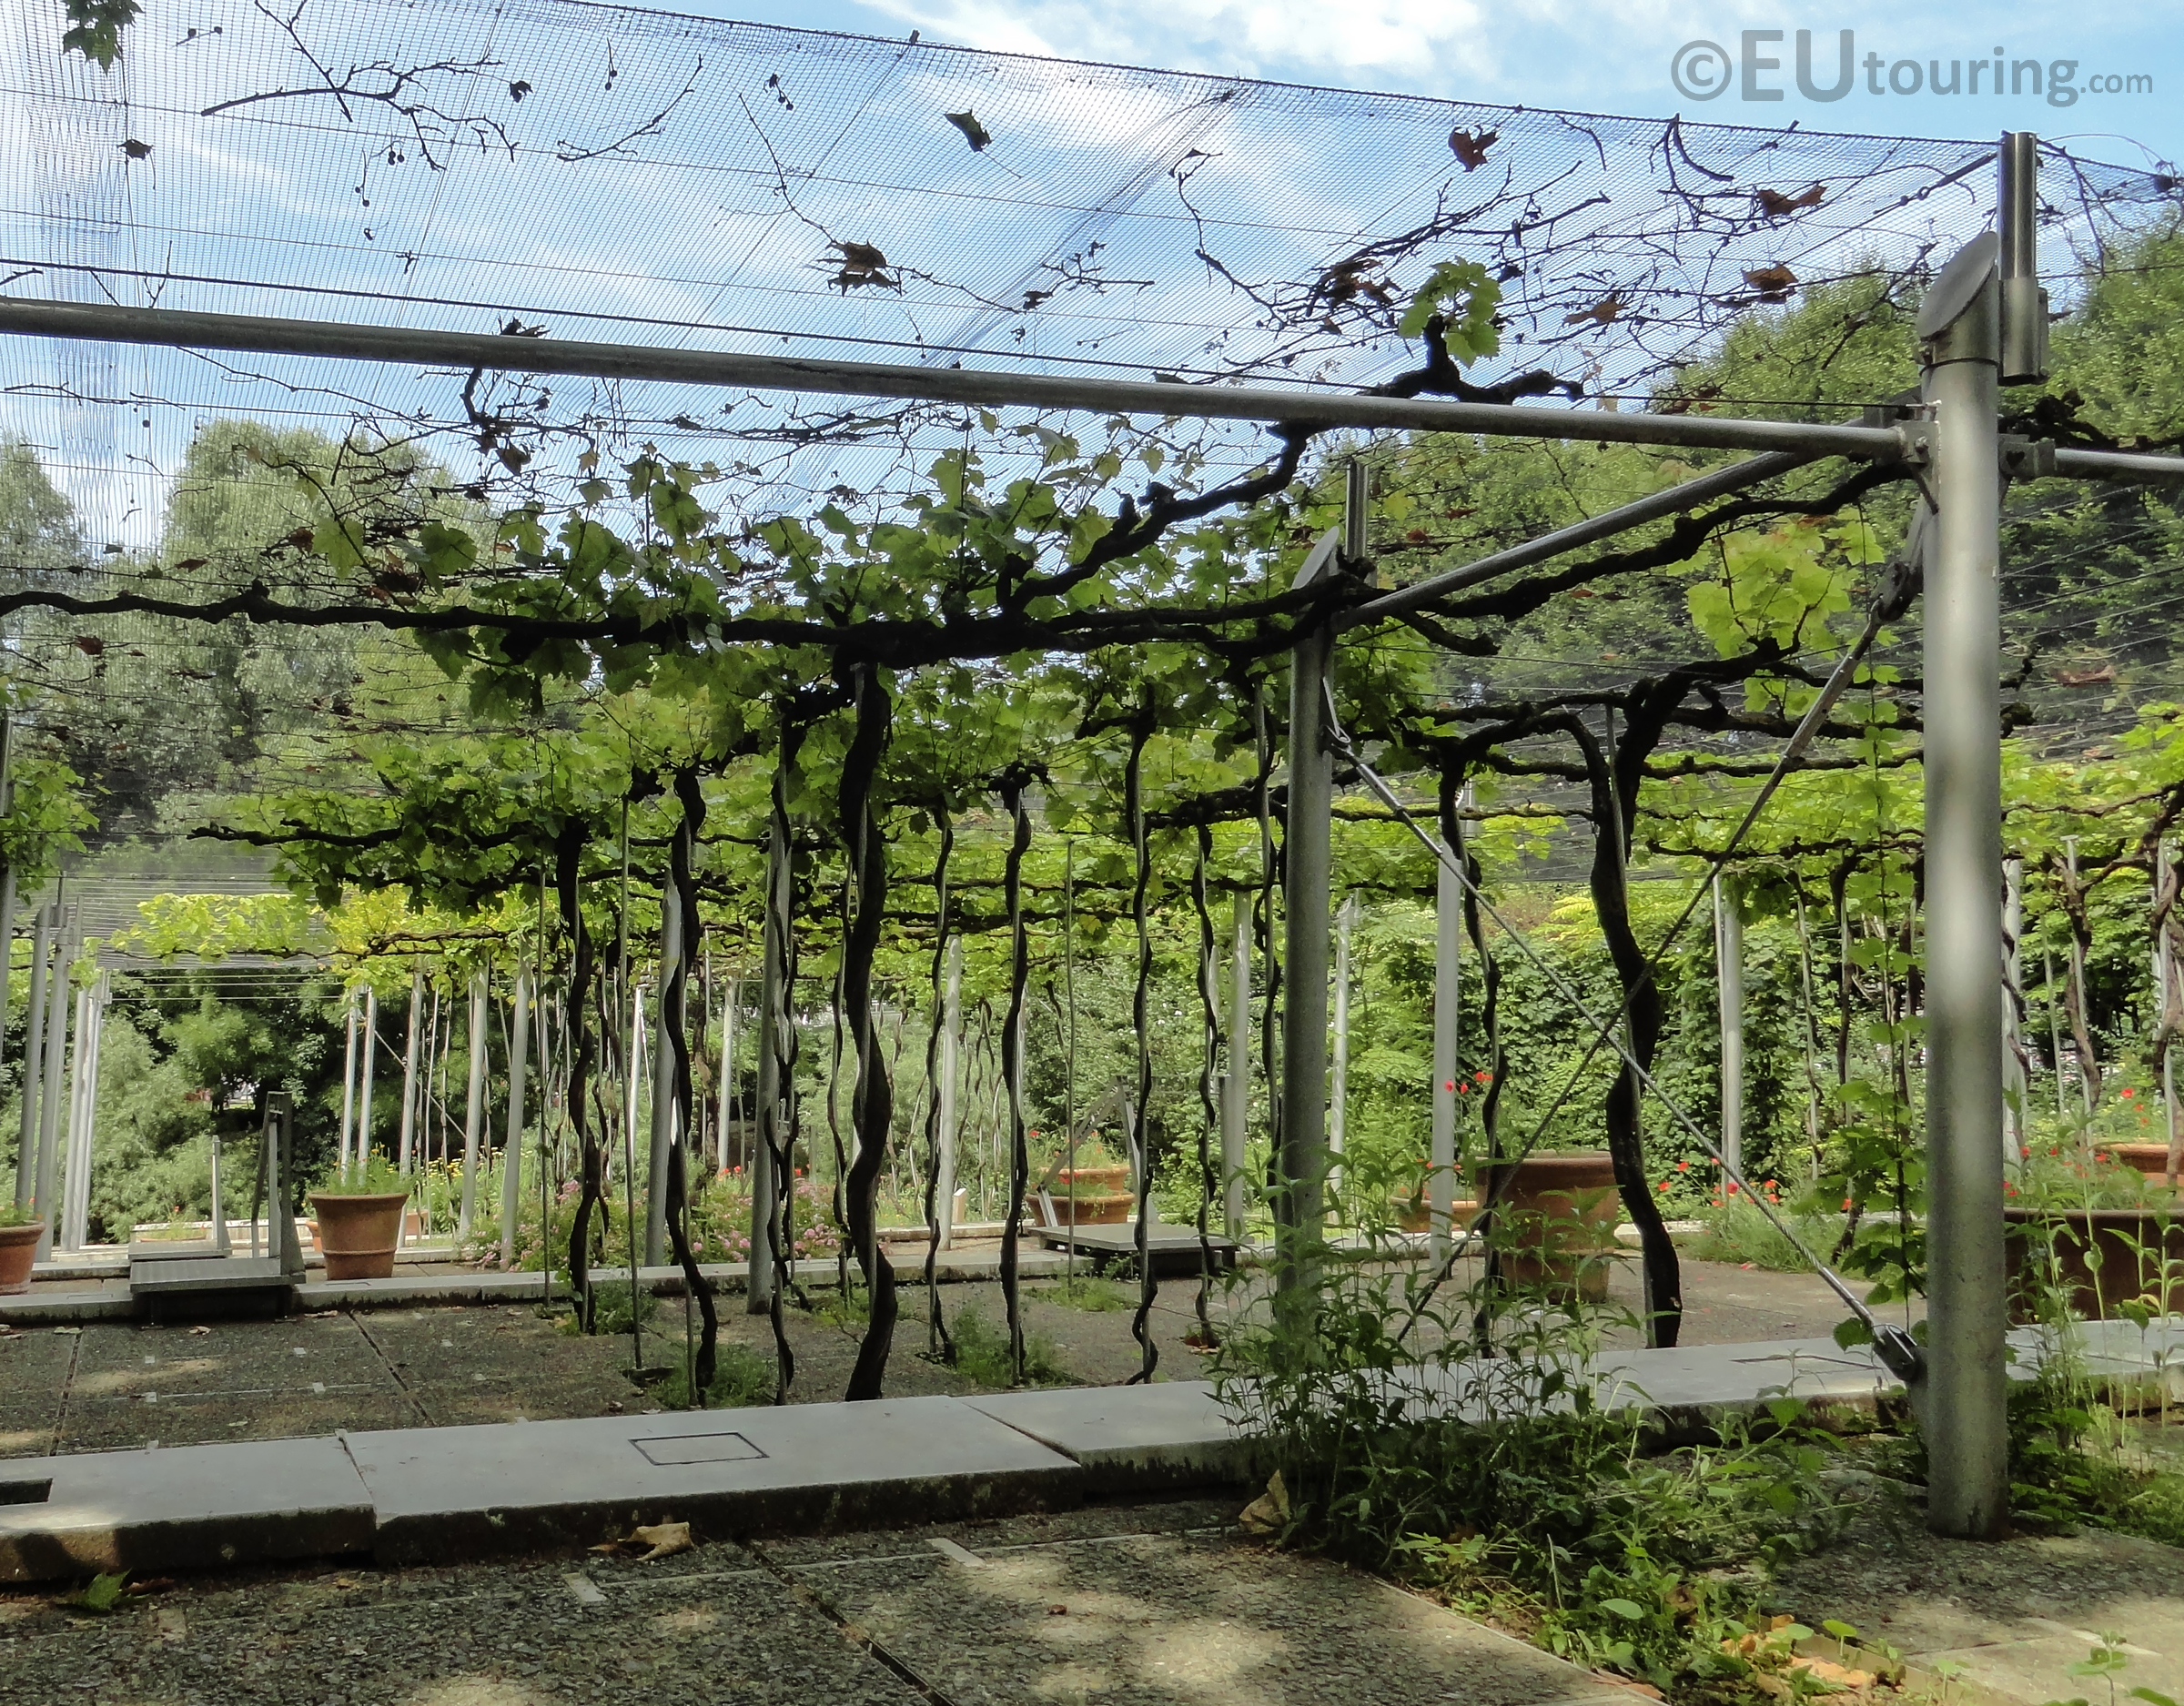 Vines and plants within Jardin de la Treille